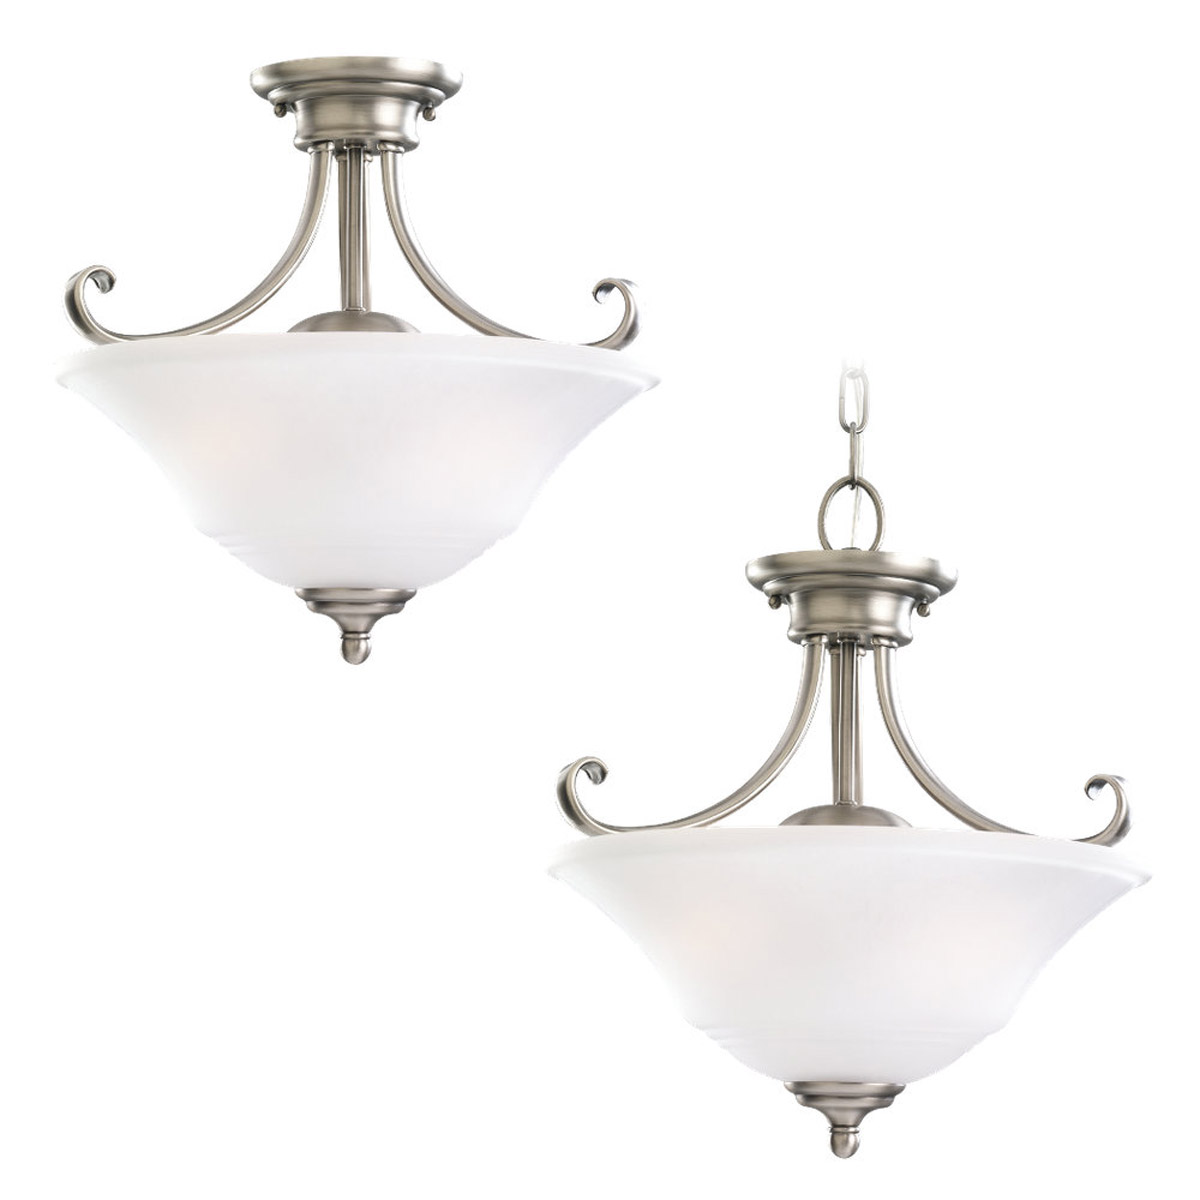 Sea Gull 77380-965 Parkview 2 Light 15 inch Antique Brushed Nickel Pendant Convertible Ceiling Light in Satin Etched Glass photo